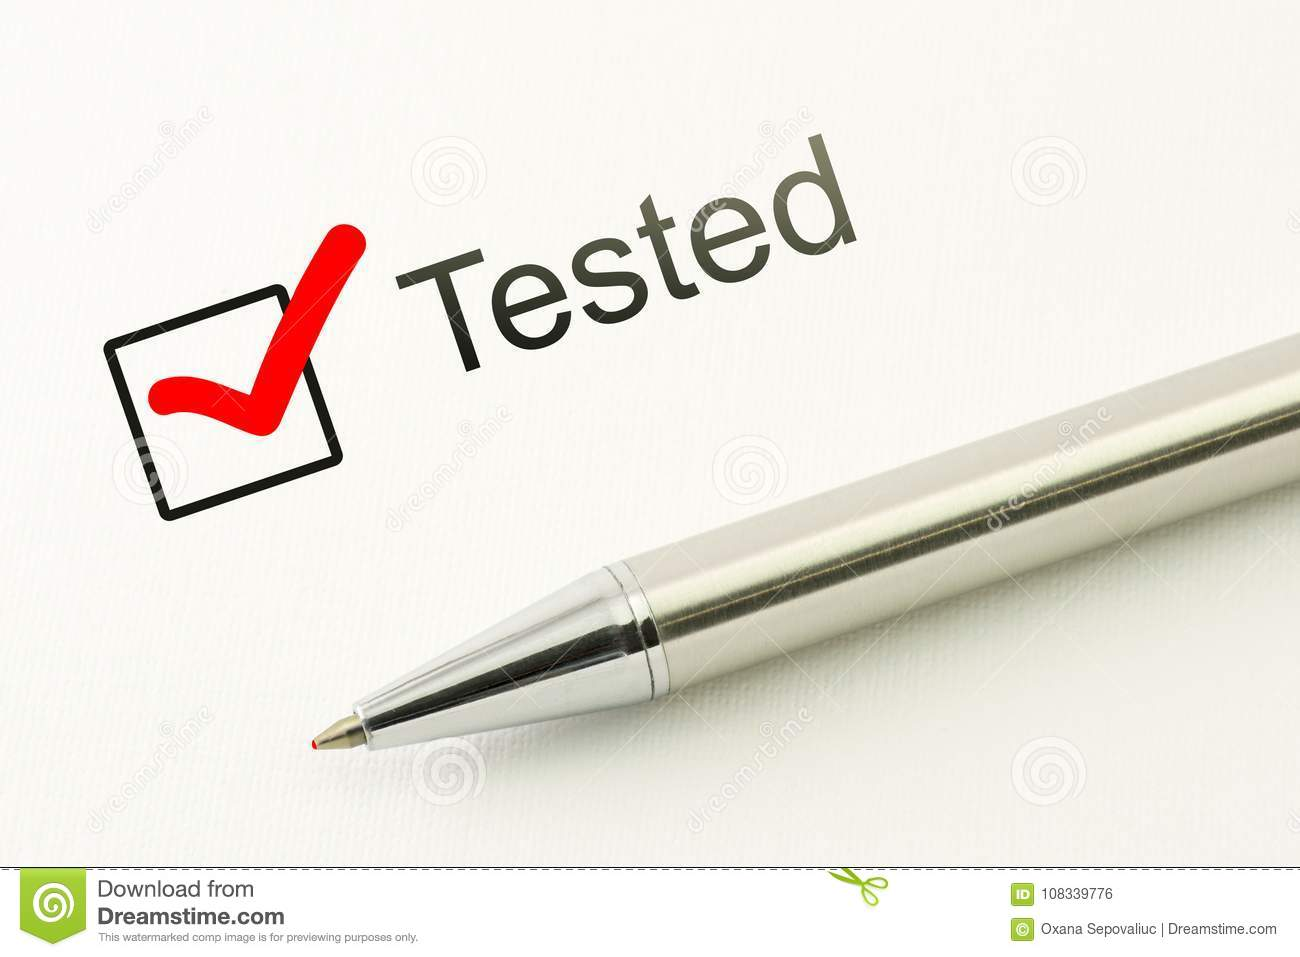 tested questionnaire survey quality check medical test checkbox